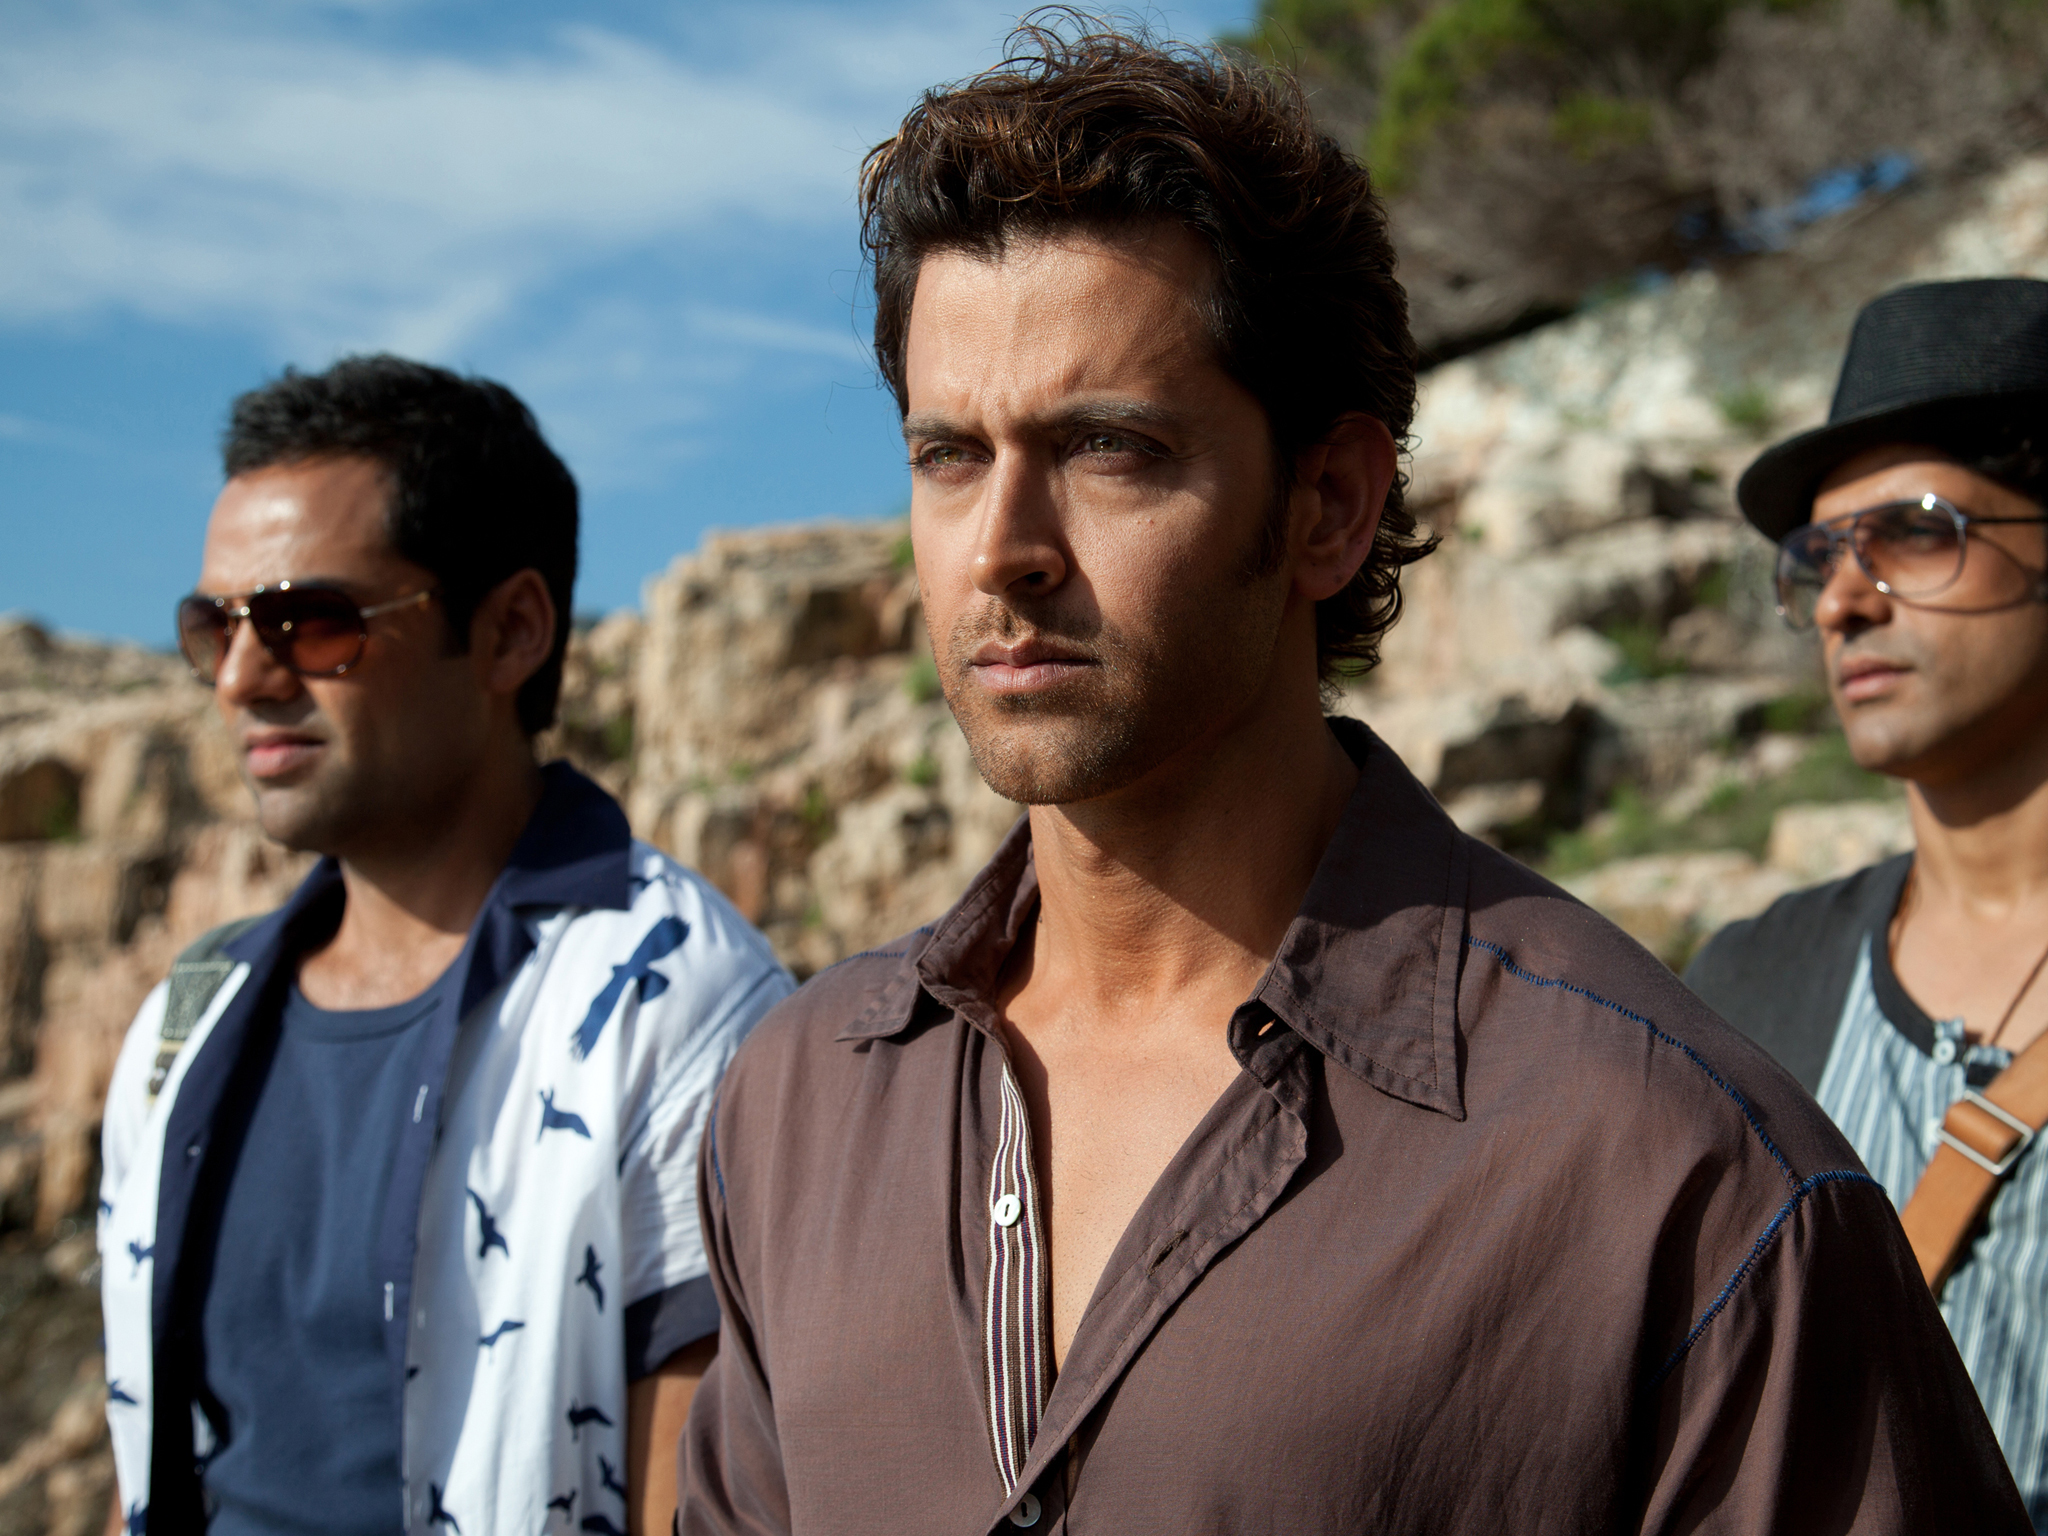 Hindi movie: Zindagi Na Milegi Dobara